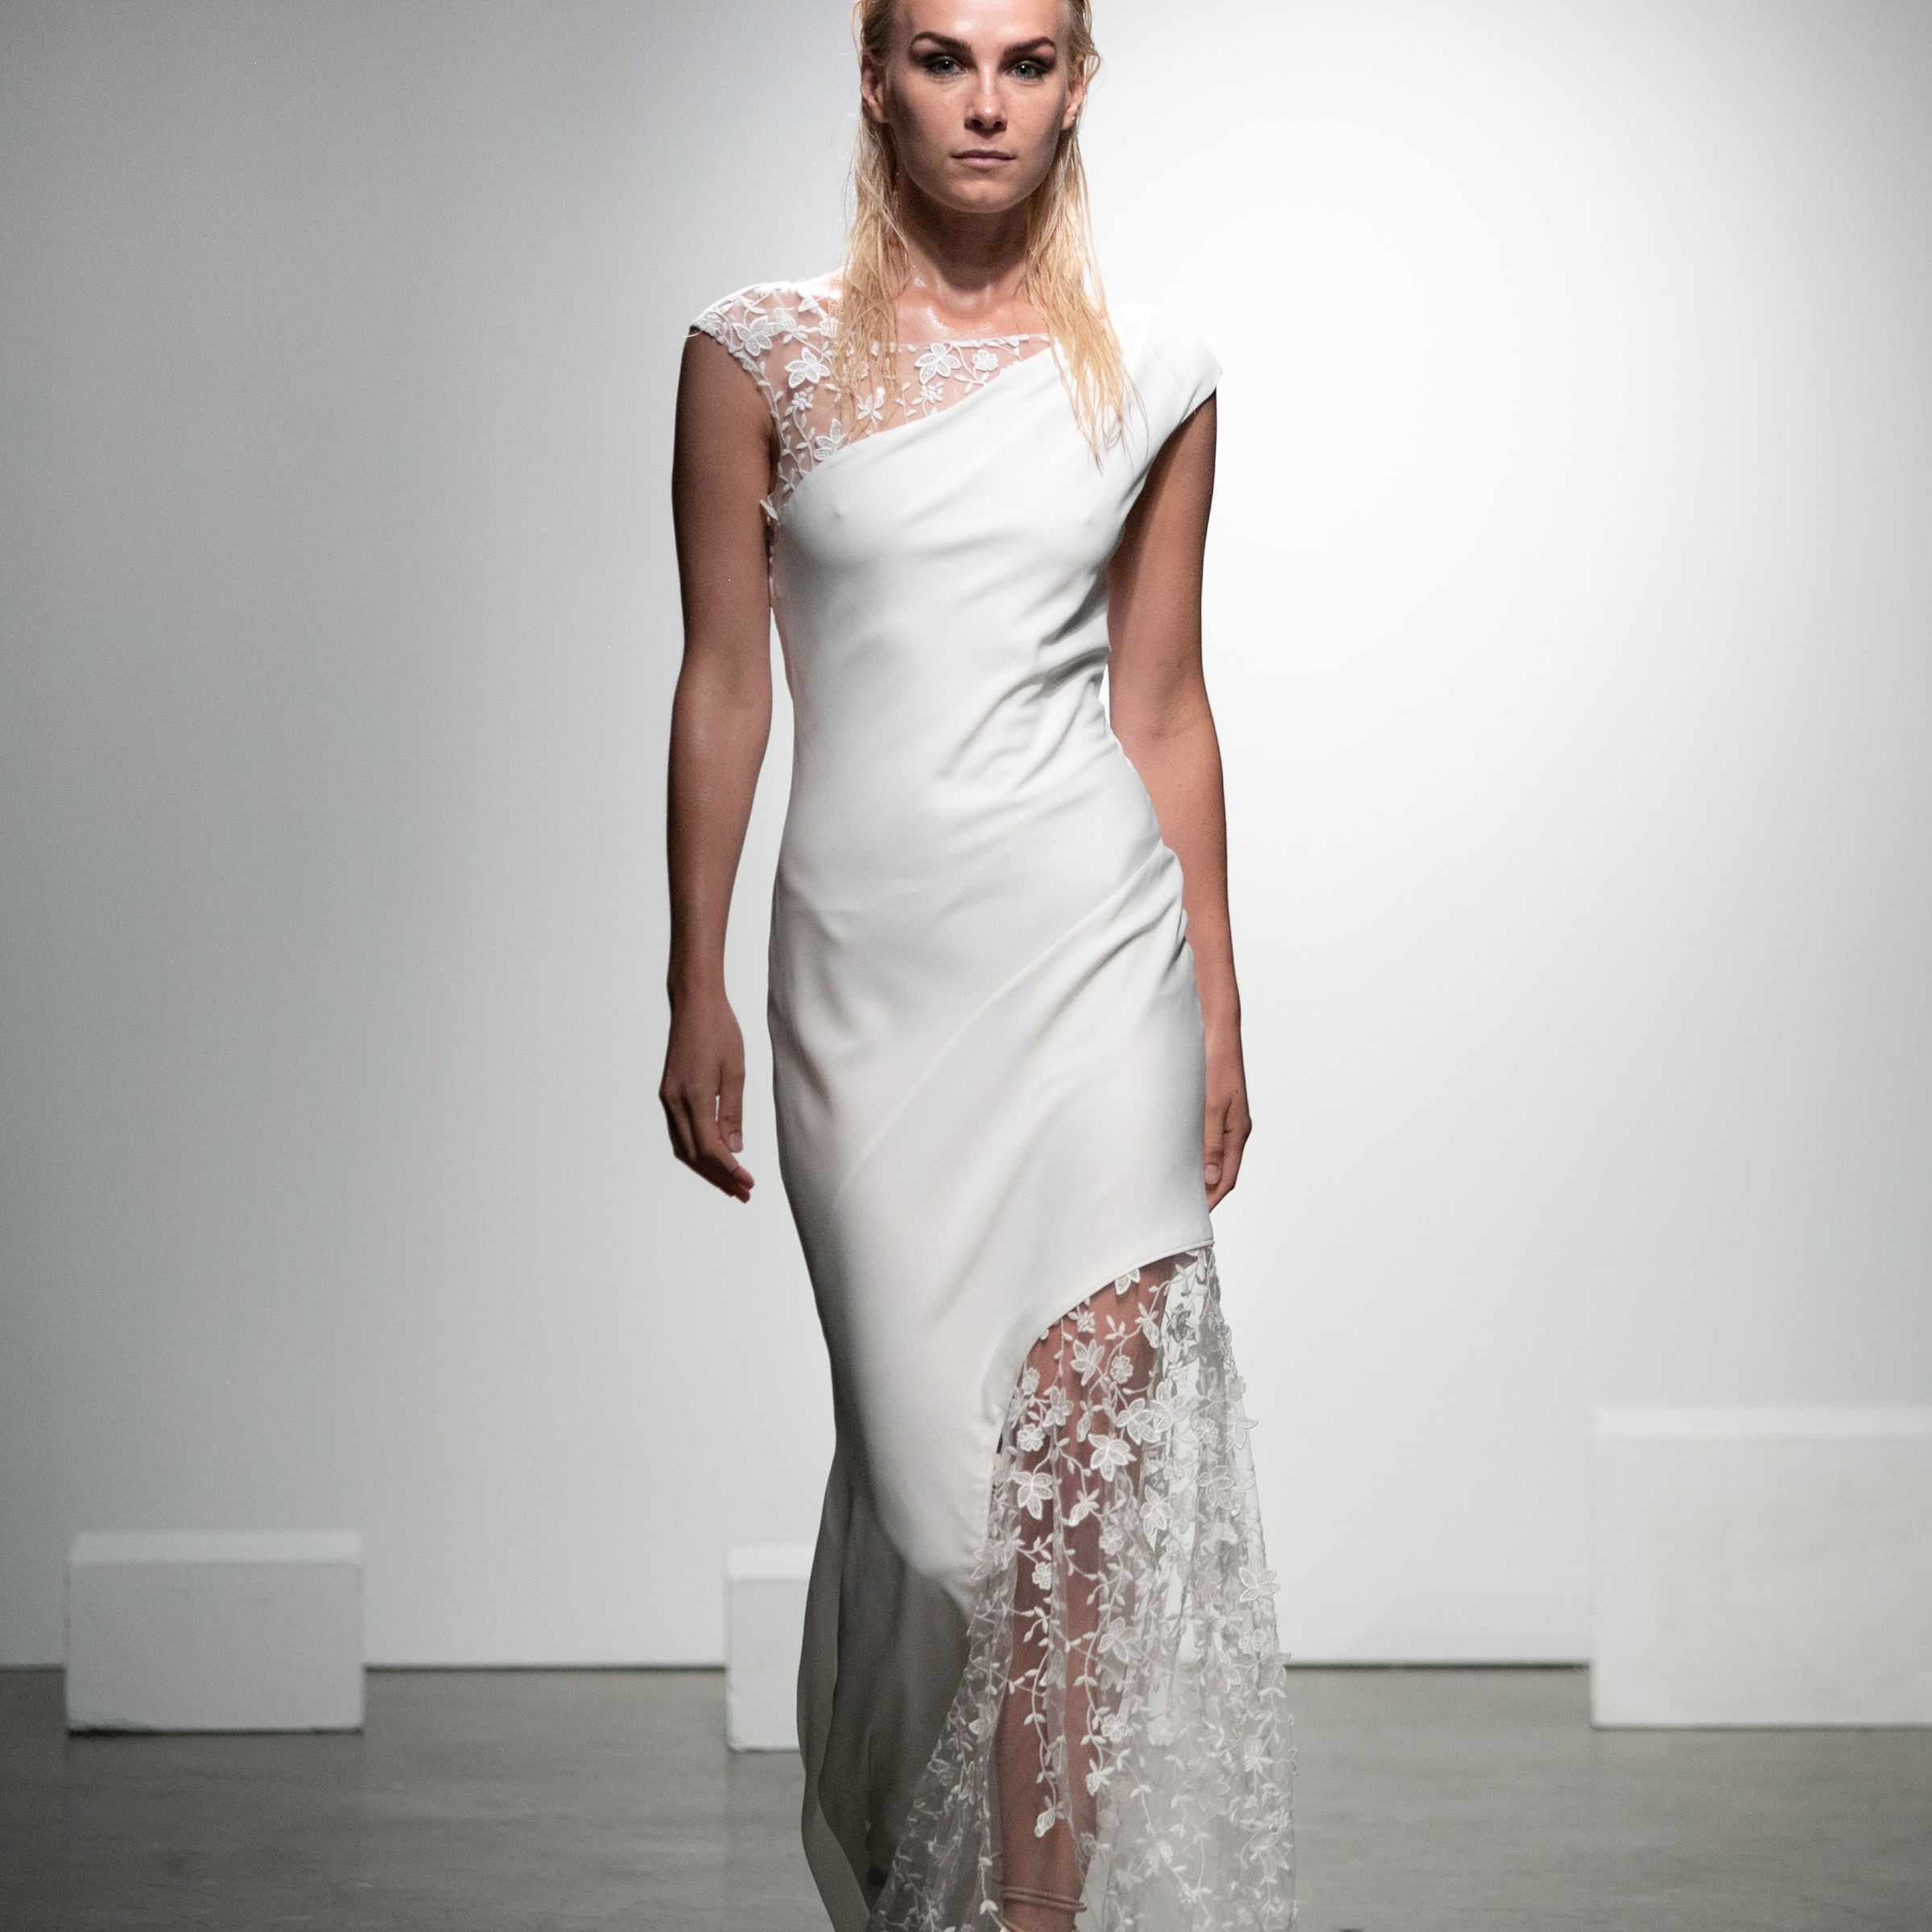 Model in asymmetrical crepe dress with floral-embroidered tulle and cap sleeves